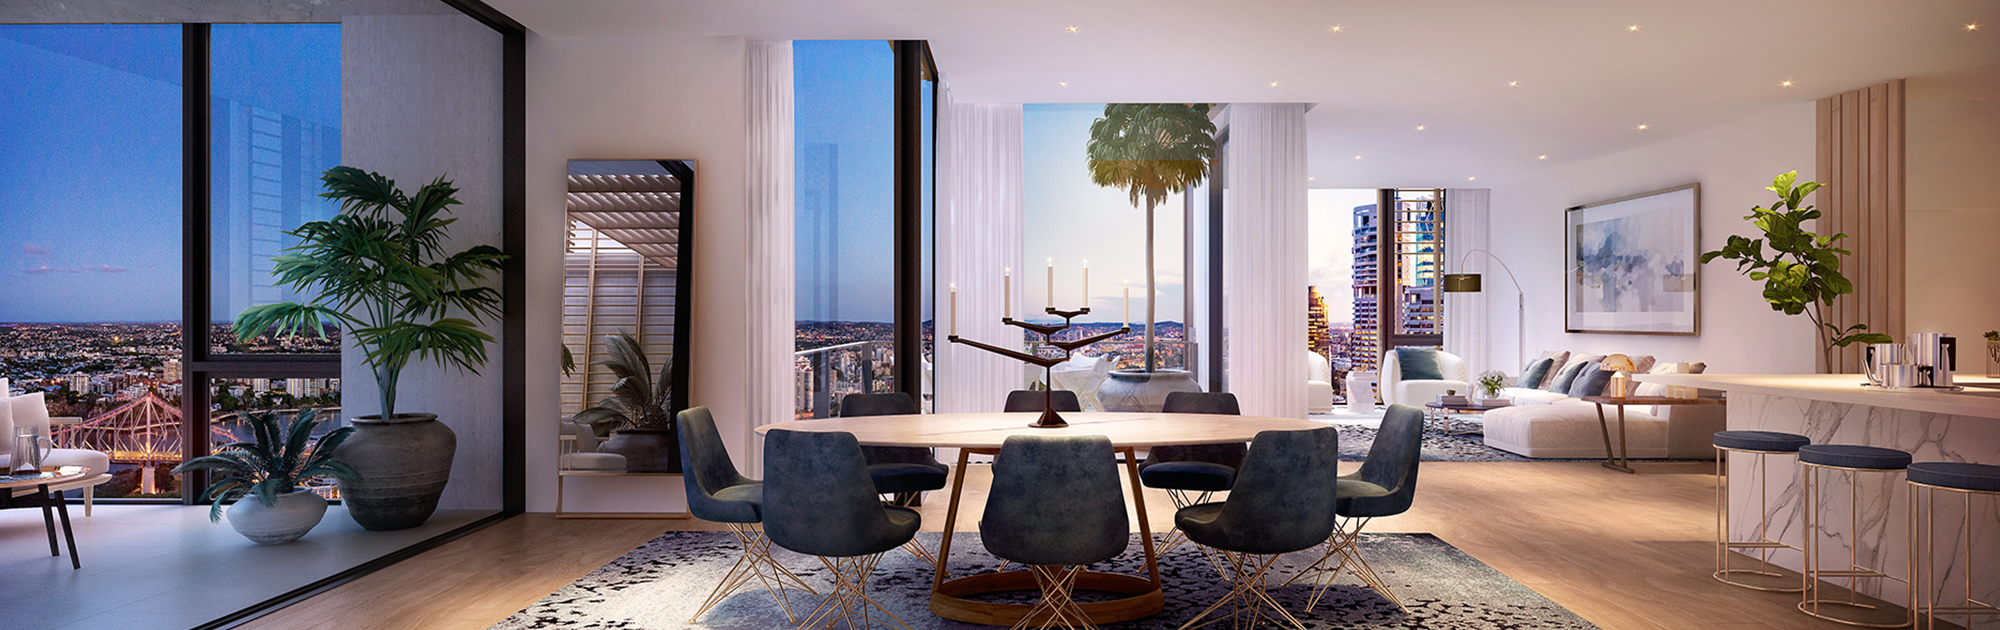 443 Queen Street Apartments For Sale CBRE Residential Projects Queensland